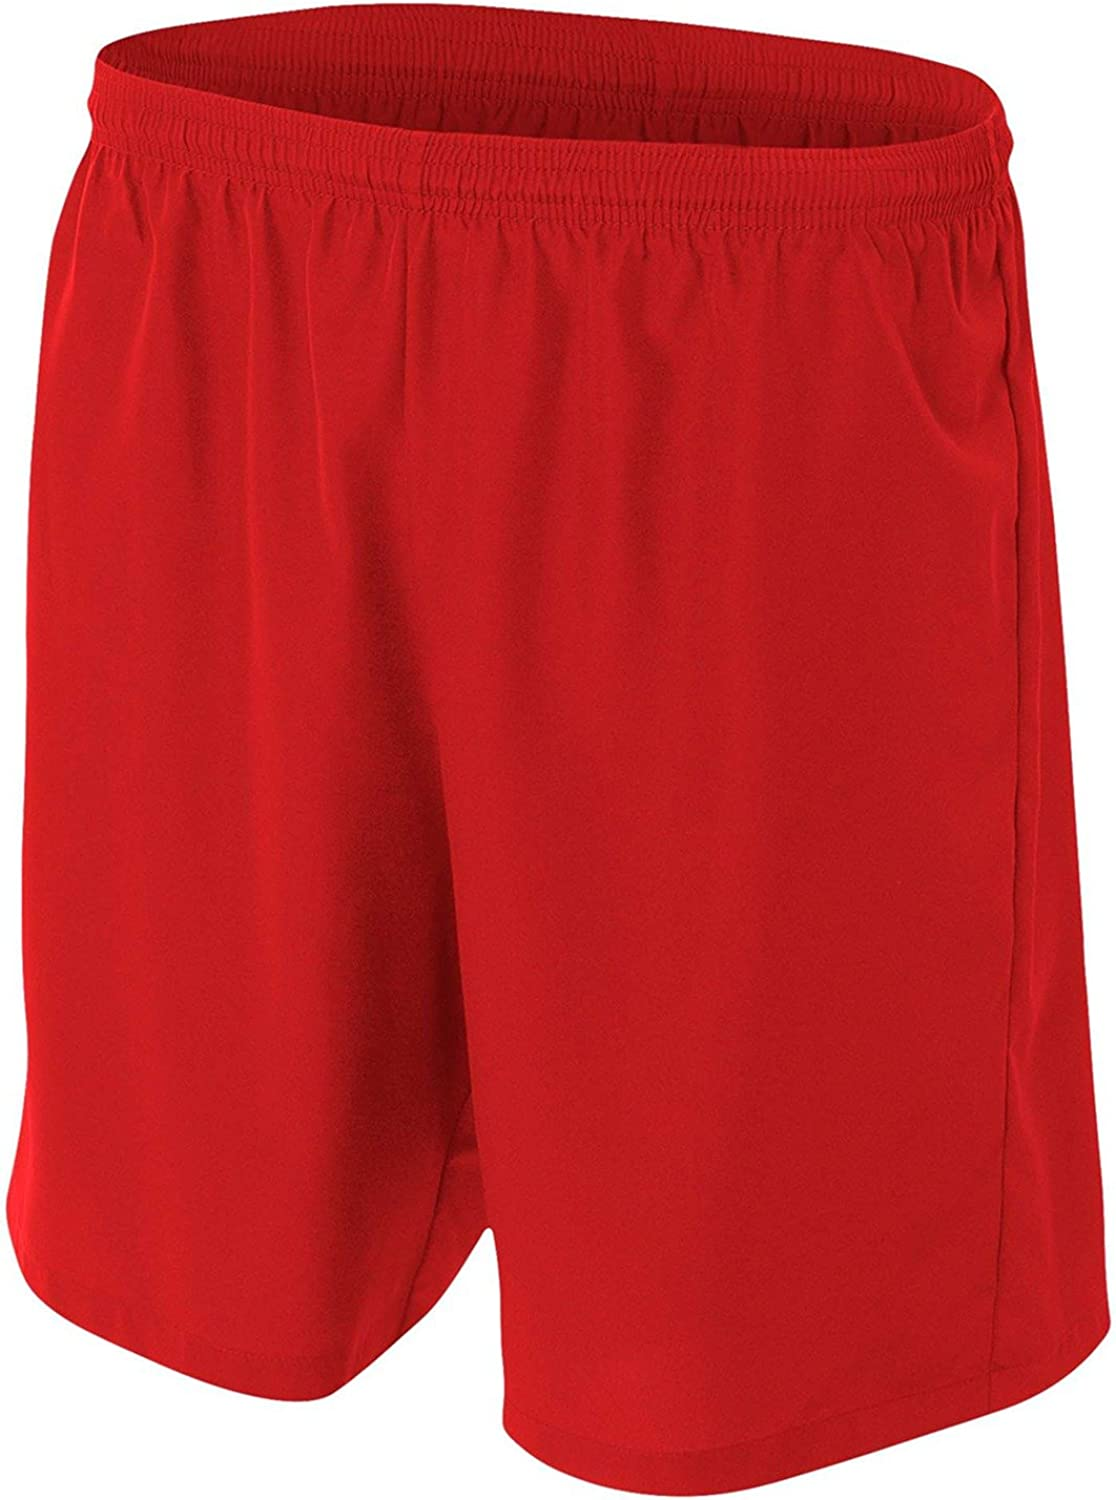 A4 Big Boys' Lightweight Woven Soccer Shorts, X-Large, Scarlet Red